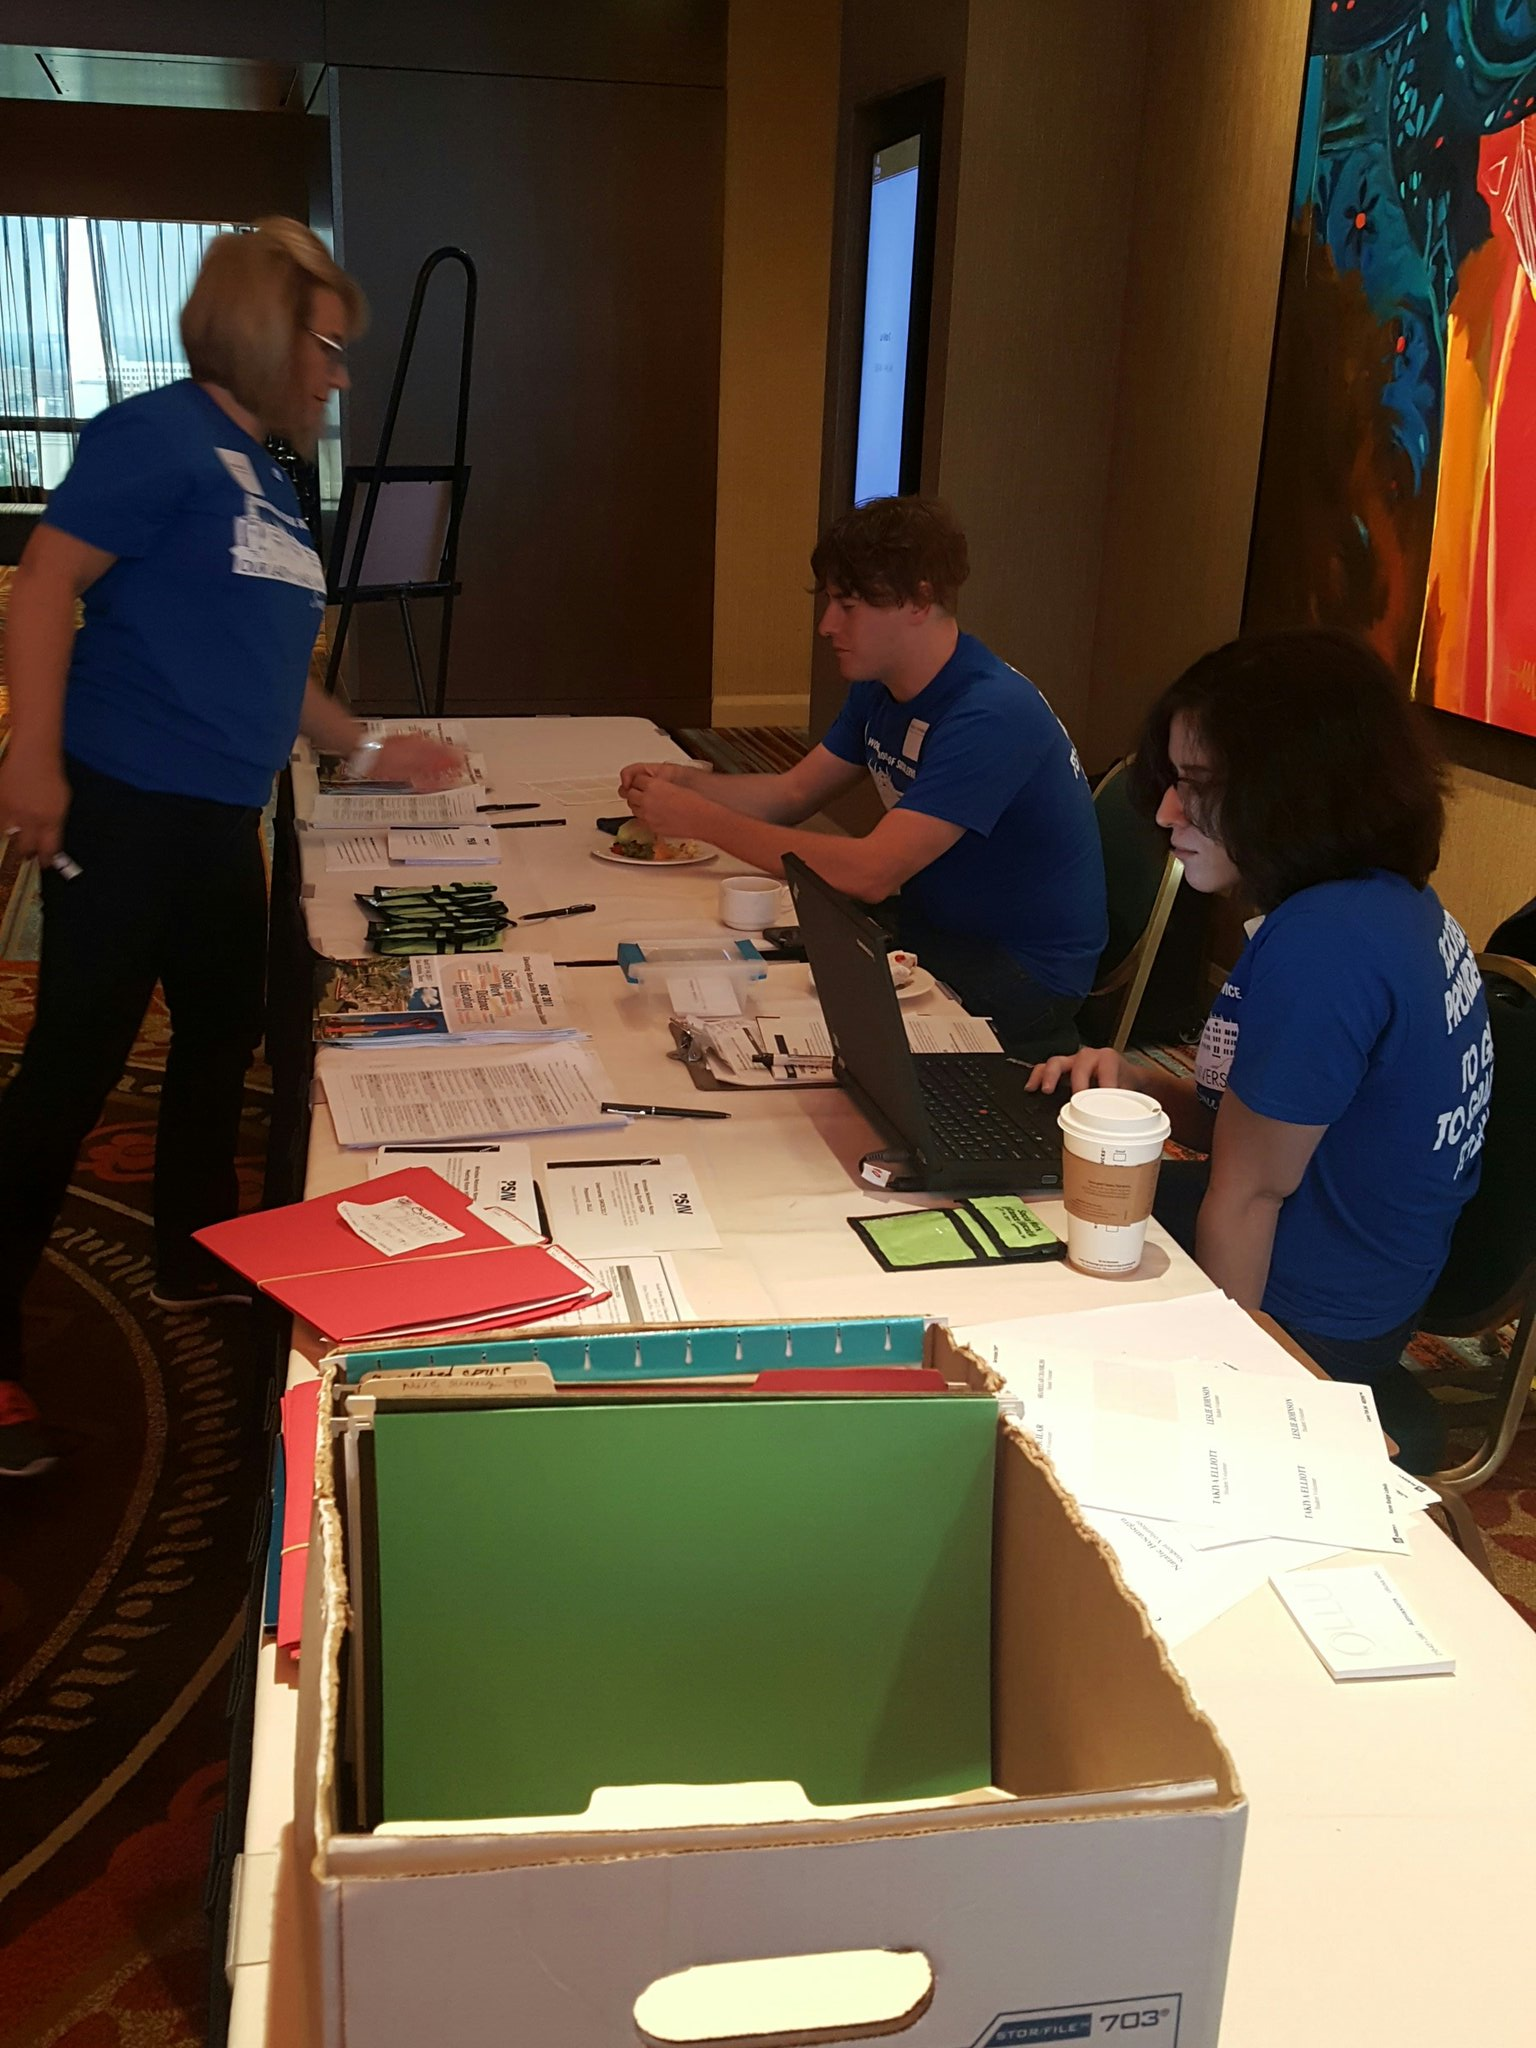 OLLU working hard this final morning #SWDE2017 https://t.co/wV9tog3vDd